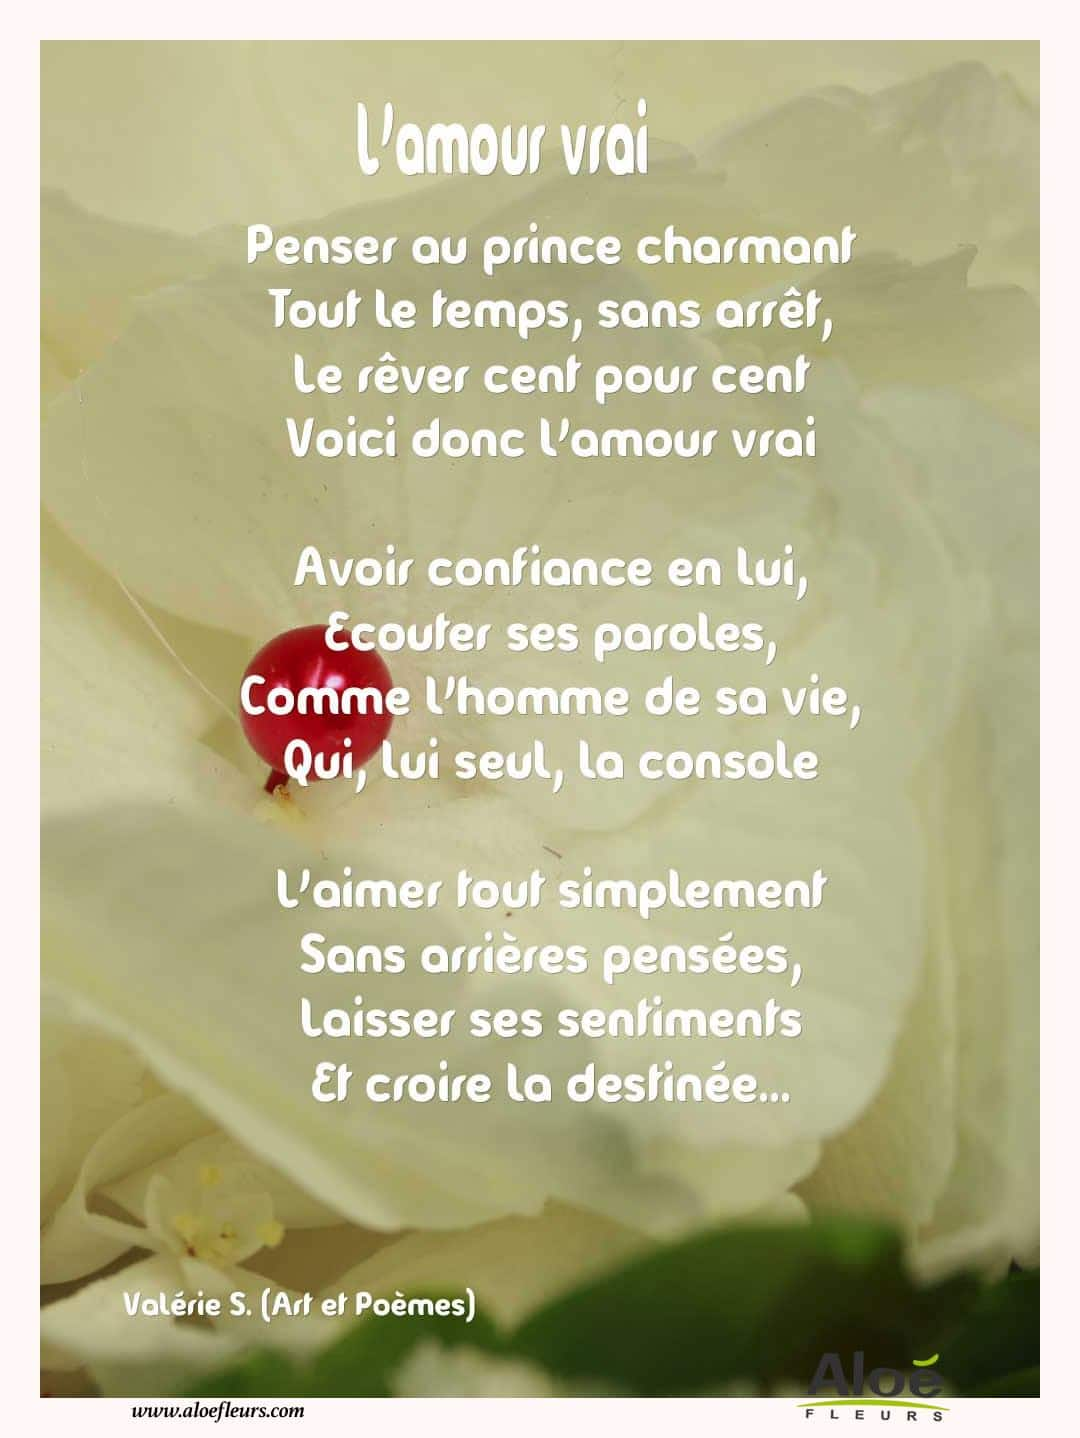 Poeme amour related keywords poeme amour long tail keywords keywordsking - Poeme d amour pour la saint valentin ...